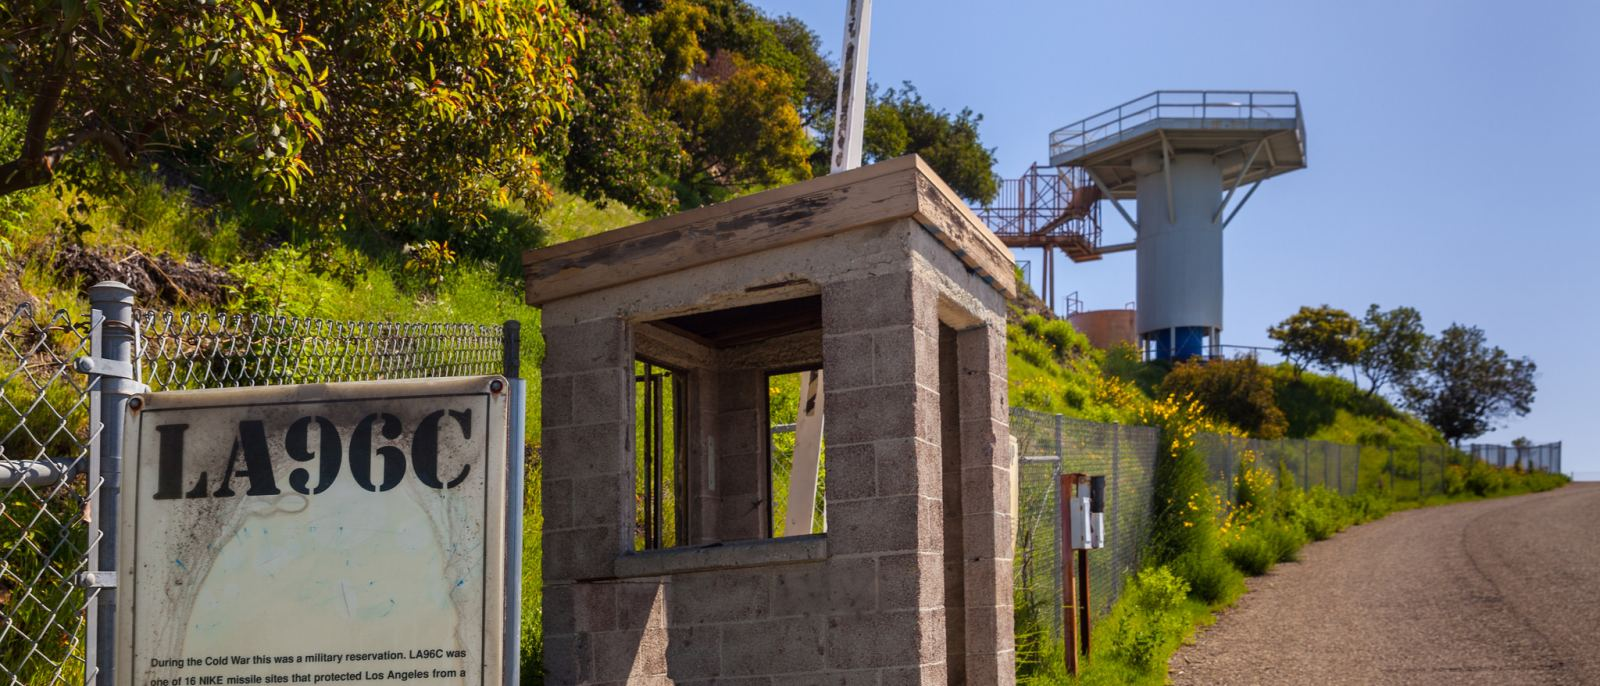 Nike Missile Site at San Vicente Mountain Park